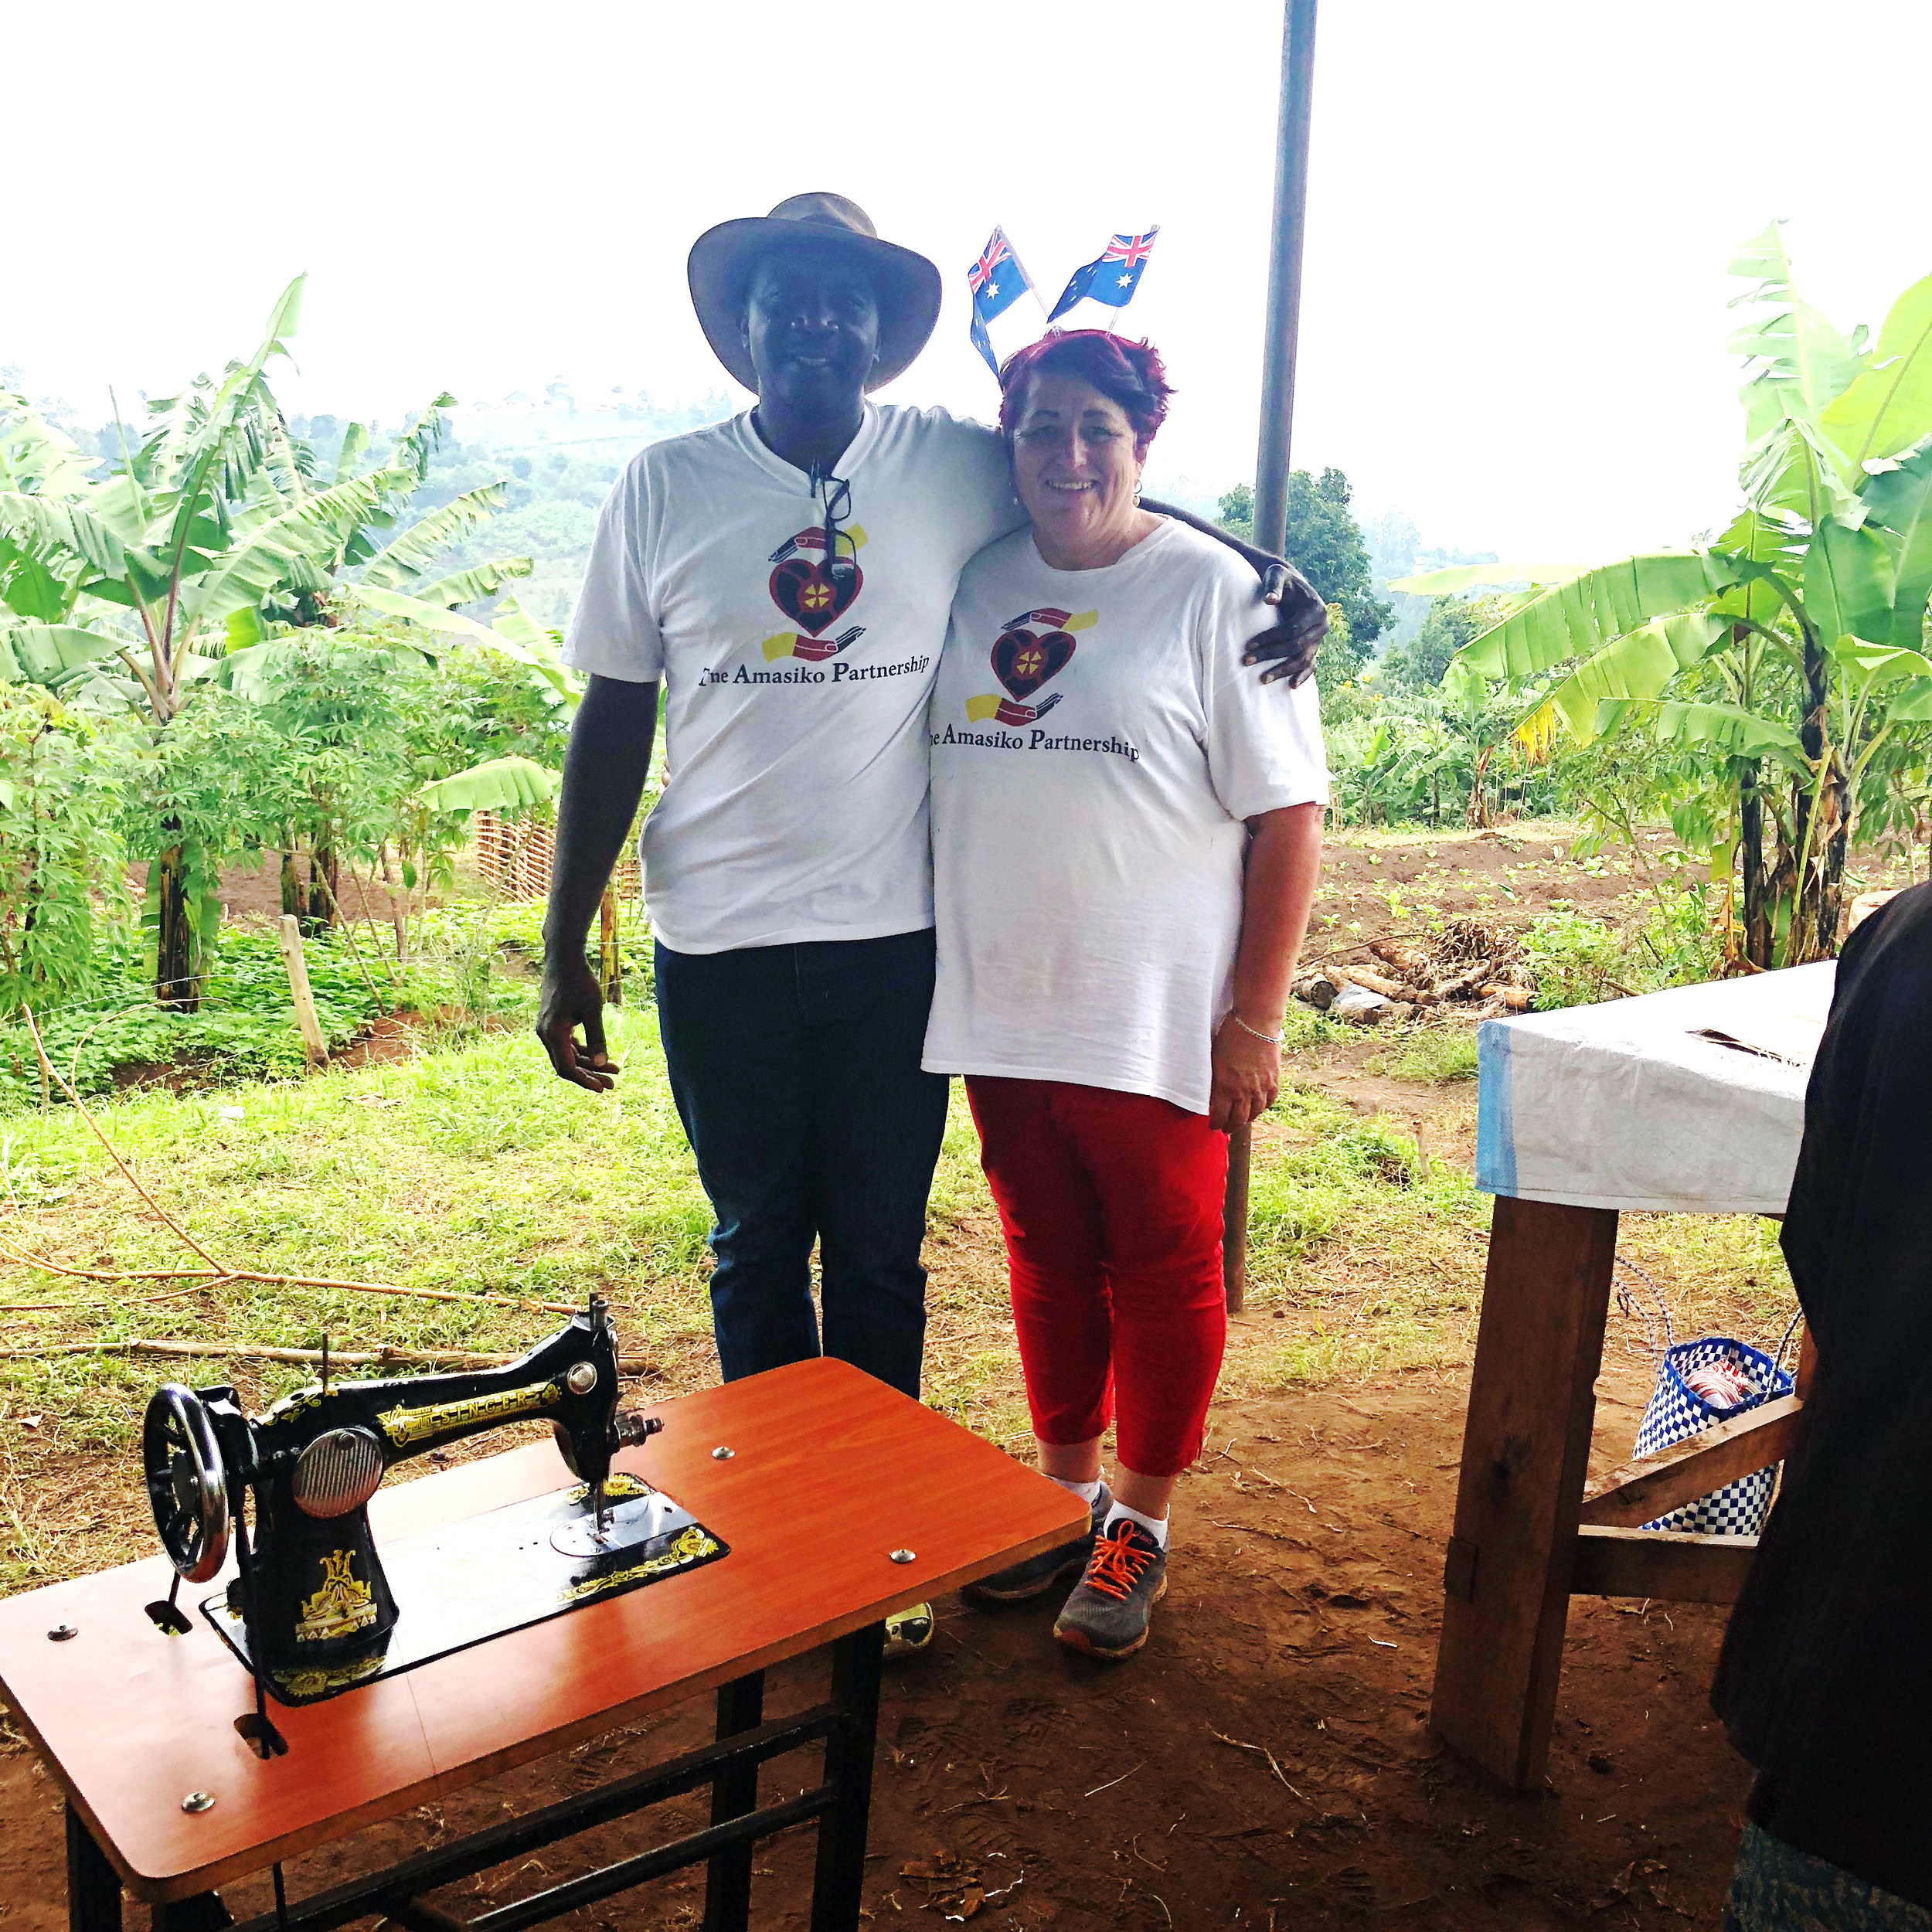 Our Founders. - The Amasiko Partnership was established in November 2017 Pam Wood is  our Australian FounderWilson Nzigye is our Ugandan Founder